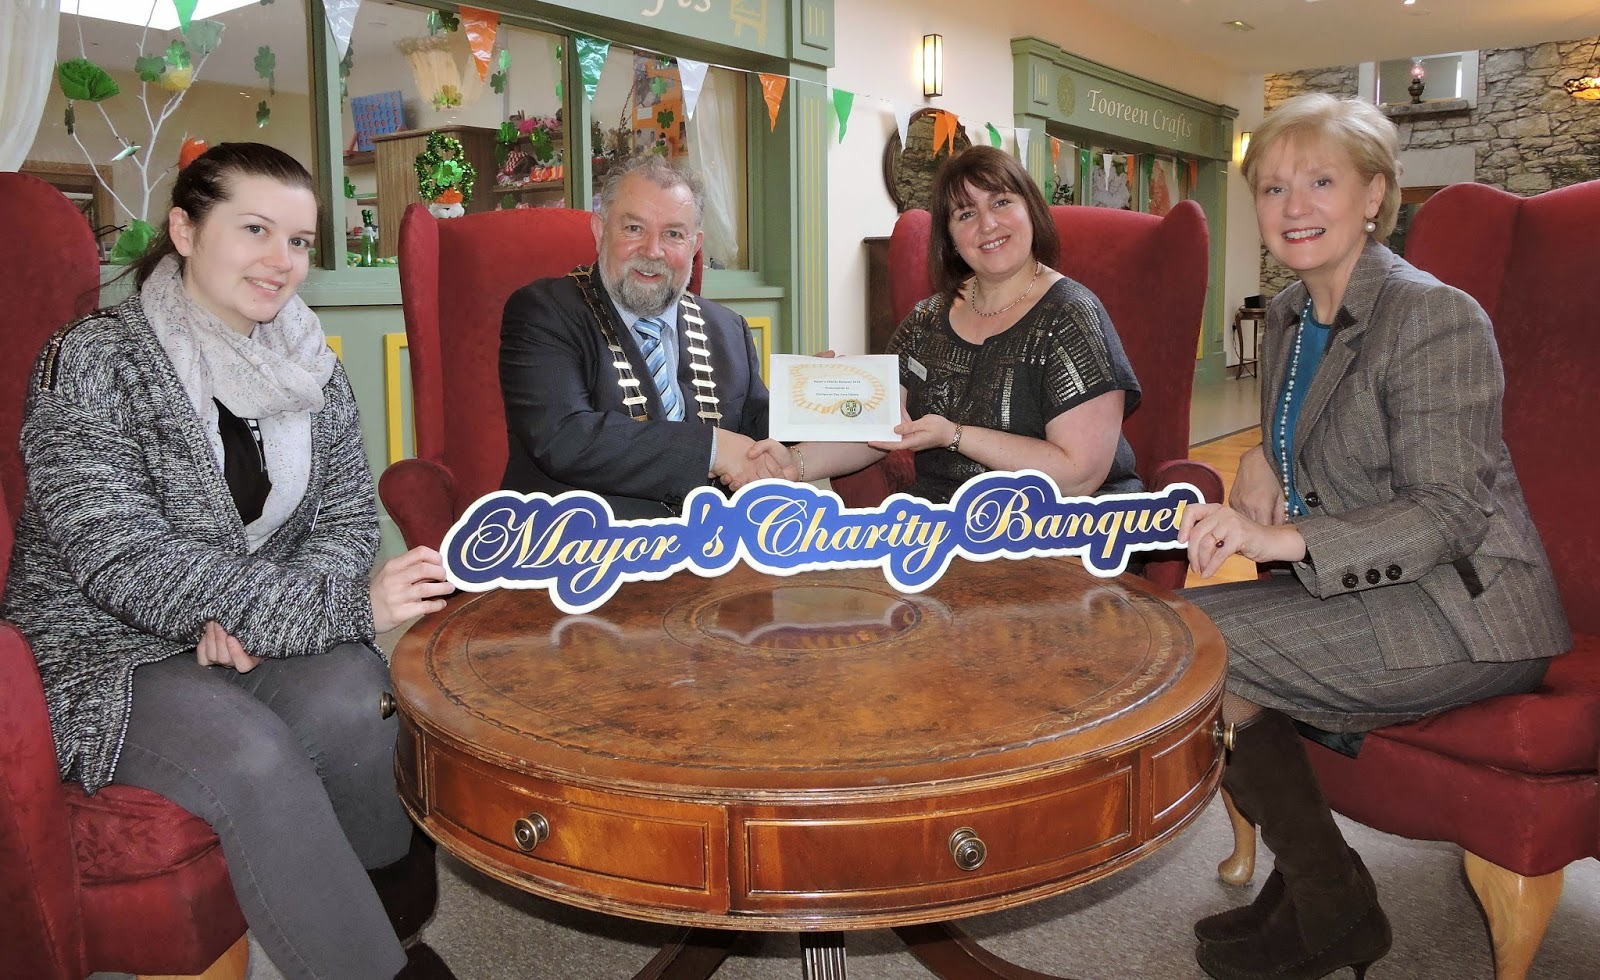 Mayor's Charity Banquet raises €24,760